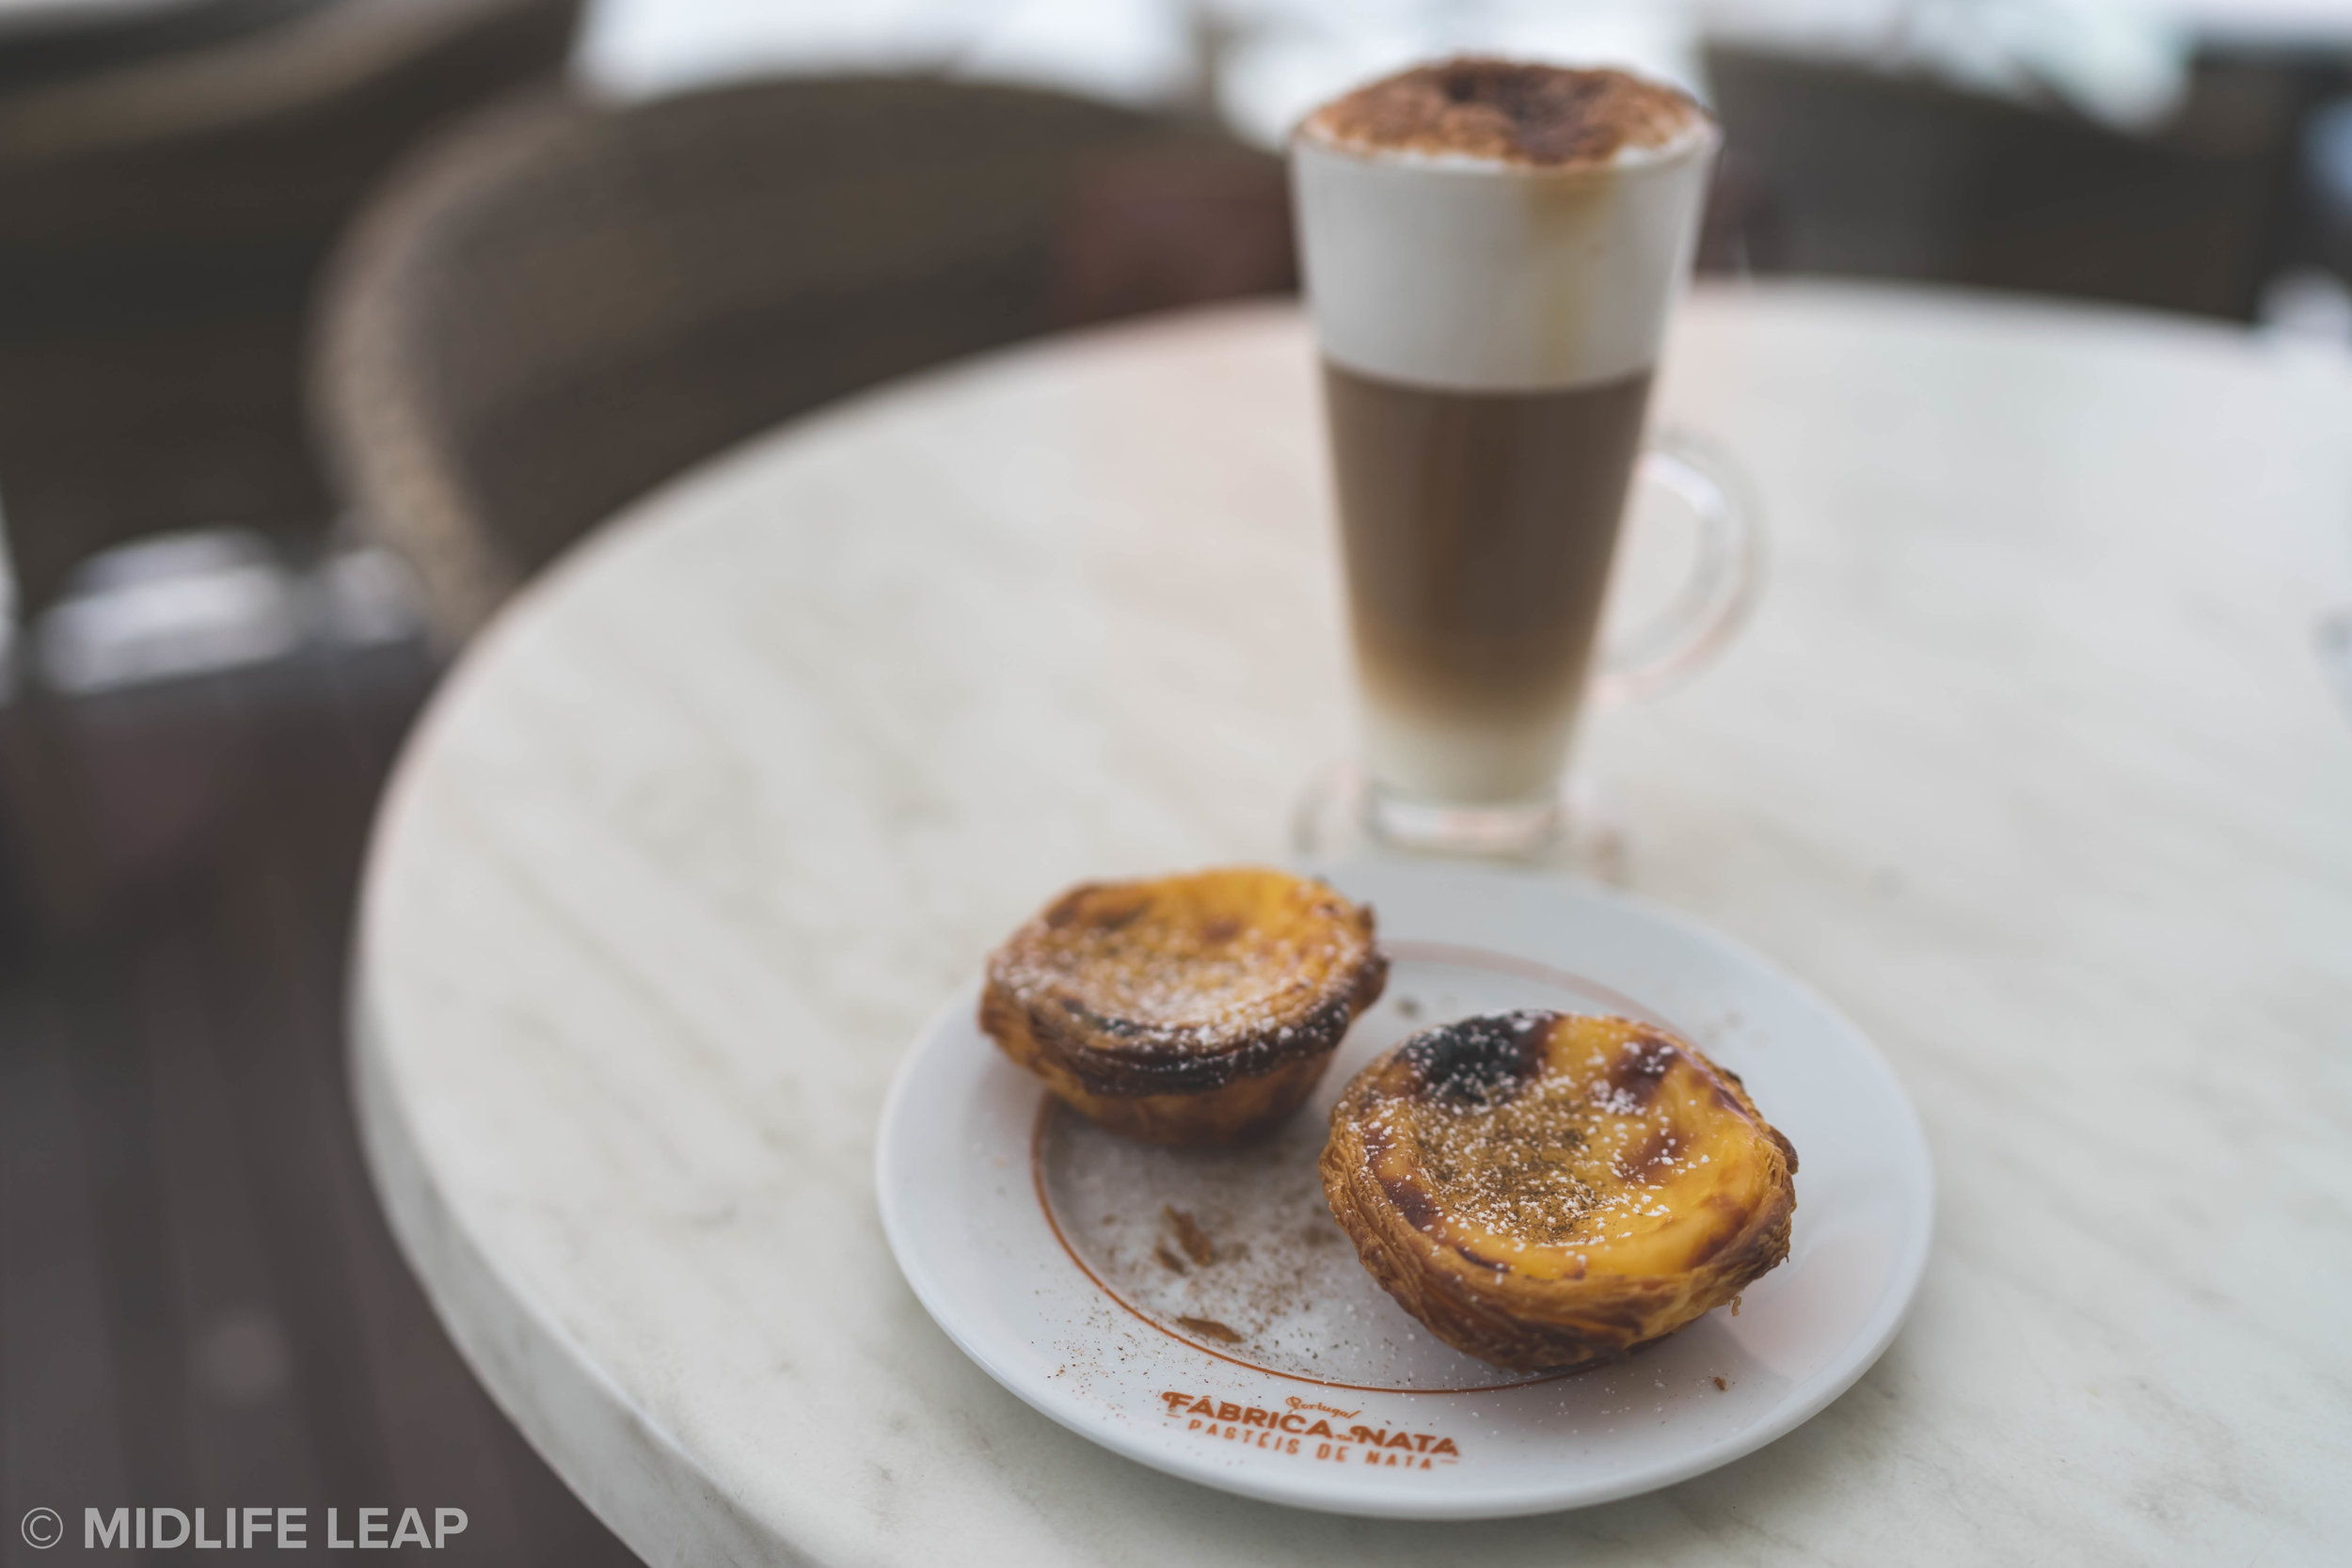 fabrica-de-nata-the-best-pasteis-de-nata-in-lisbon